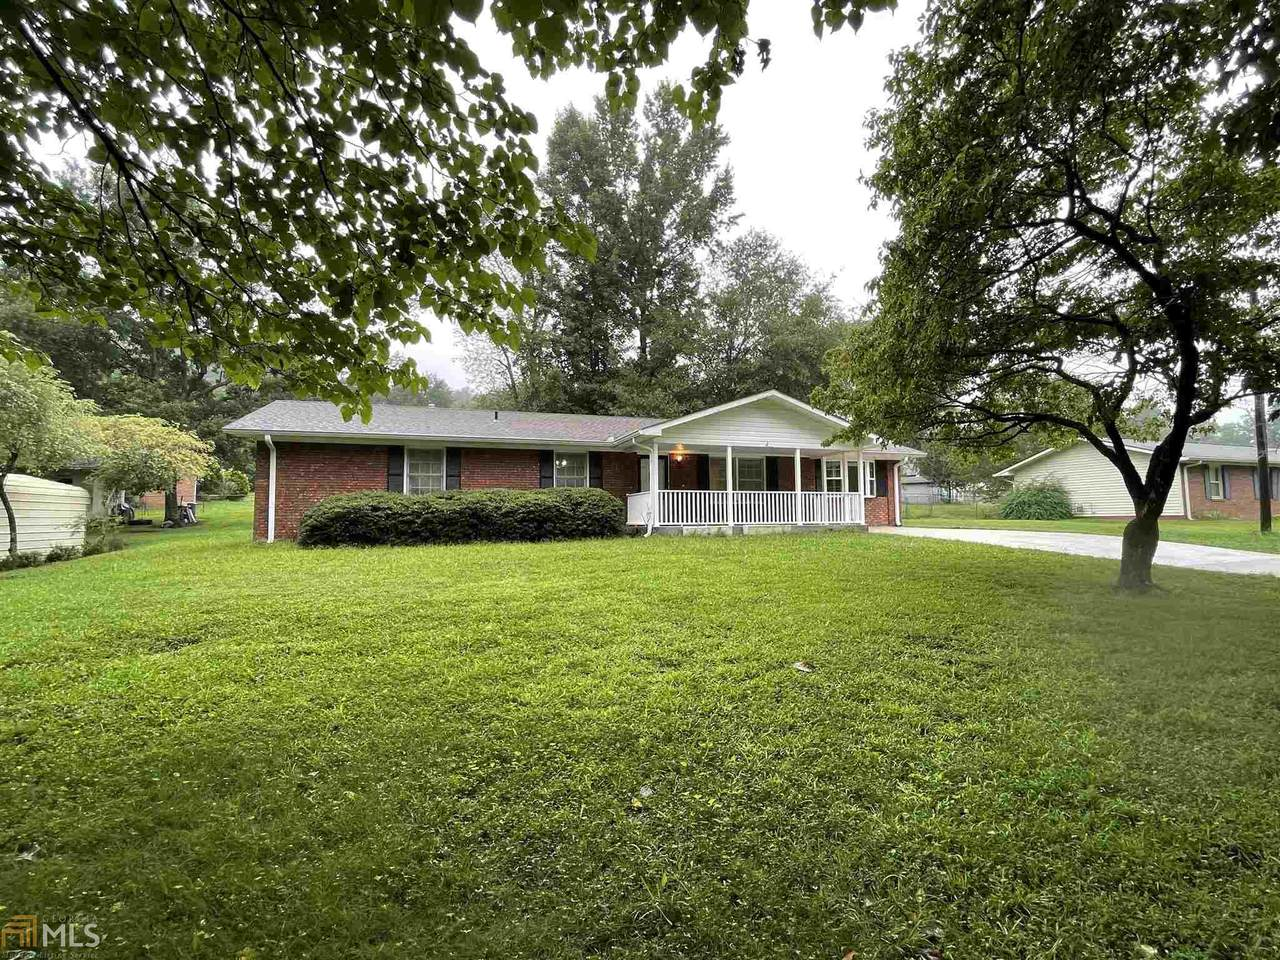 78 Green Valley Dr - Photo 1